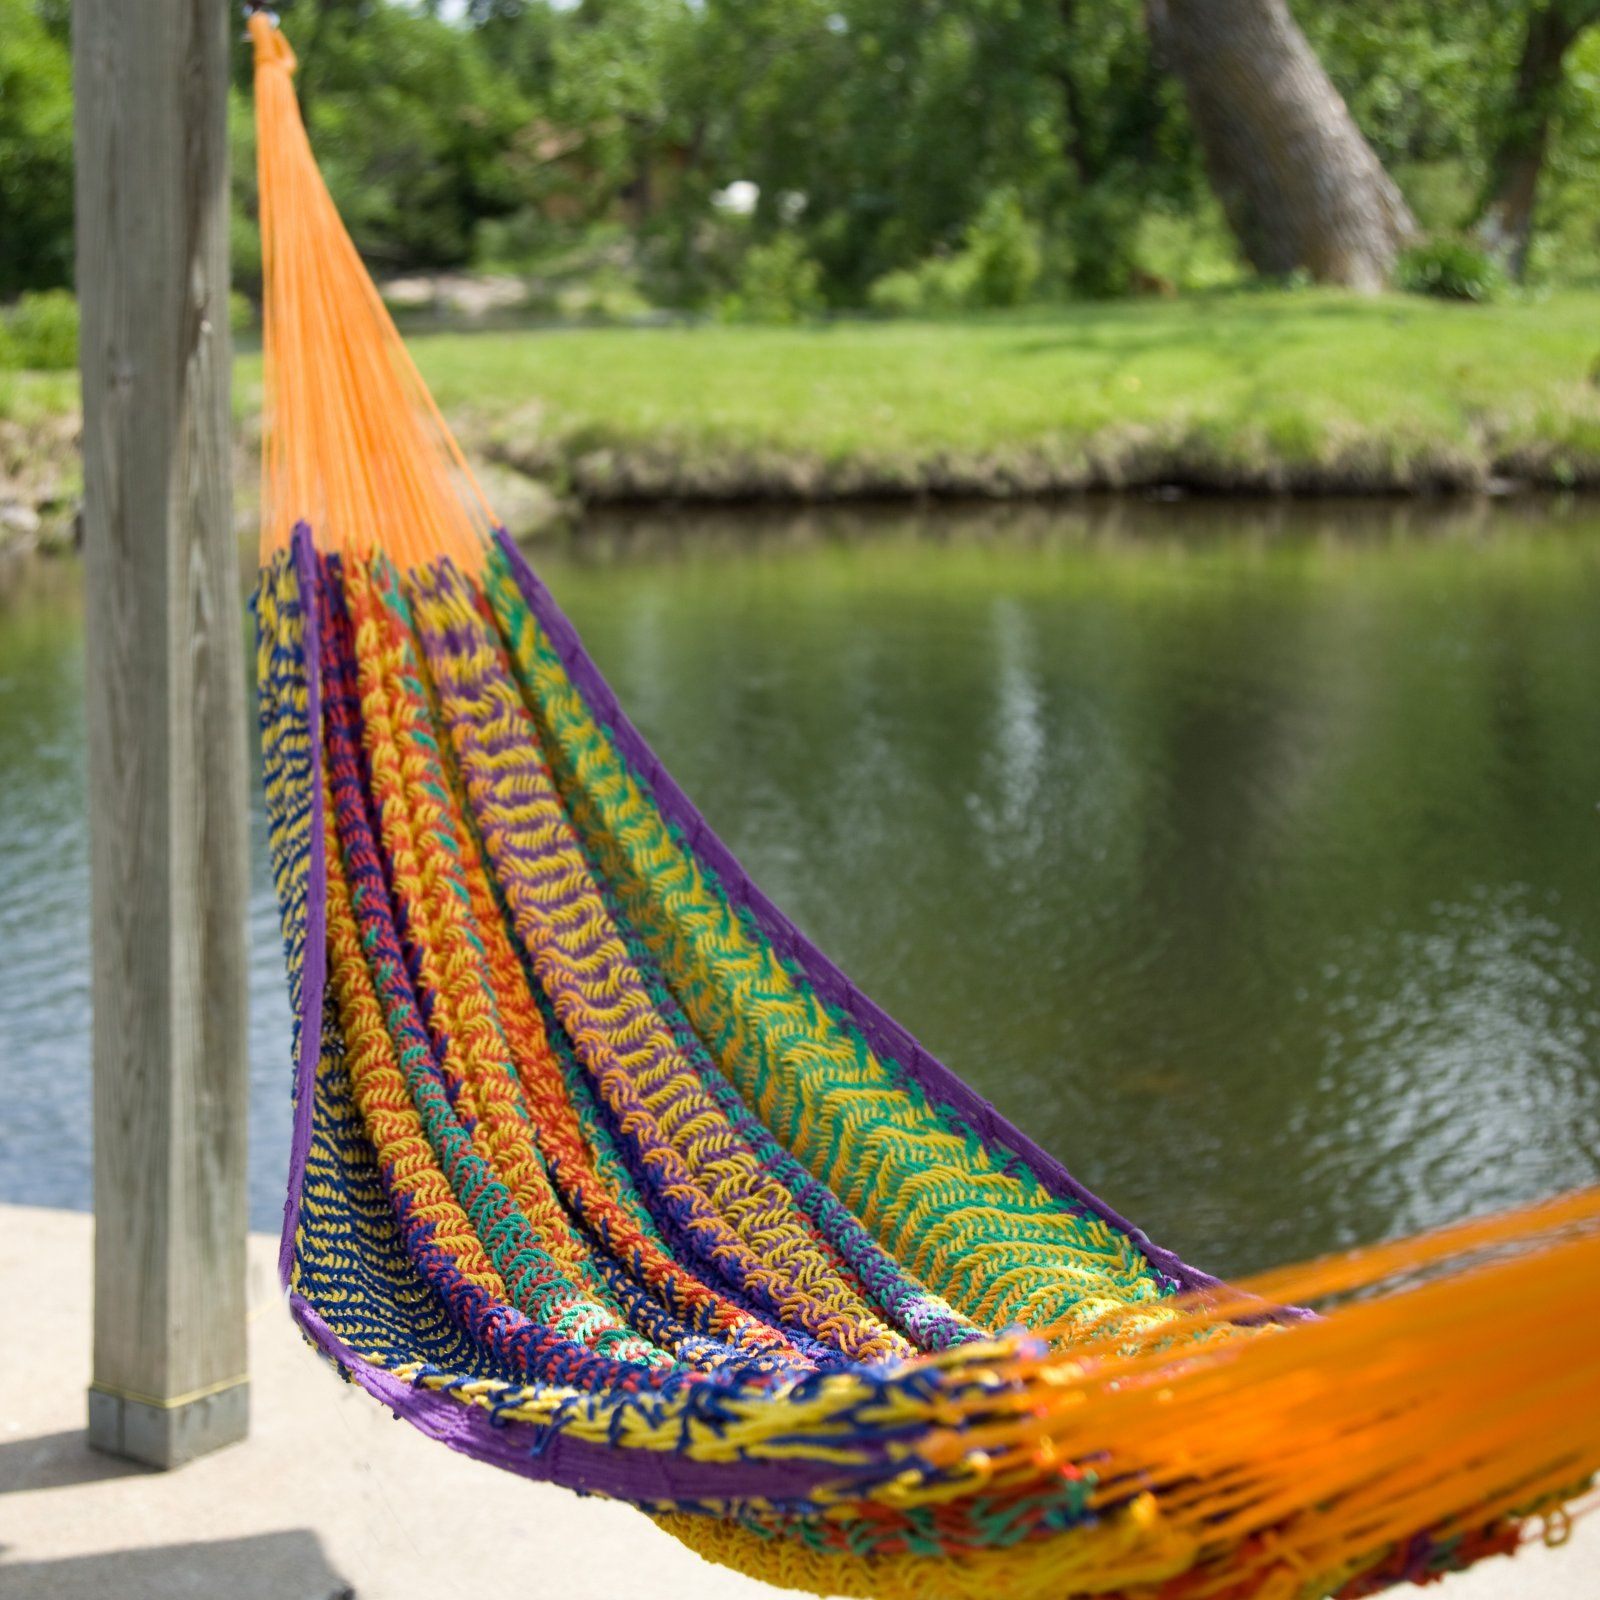 buy travel person quality swing nvie bed double ups high hammock or hang canvas garden camping stripe portable fedex outdoor product